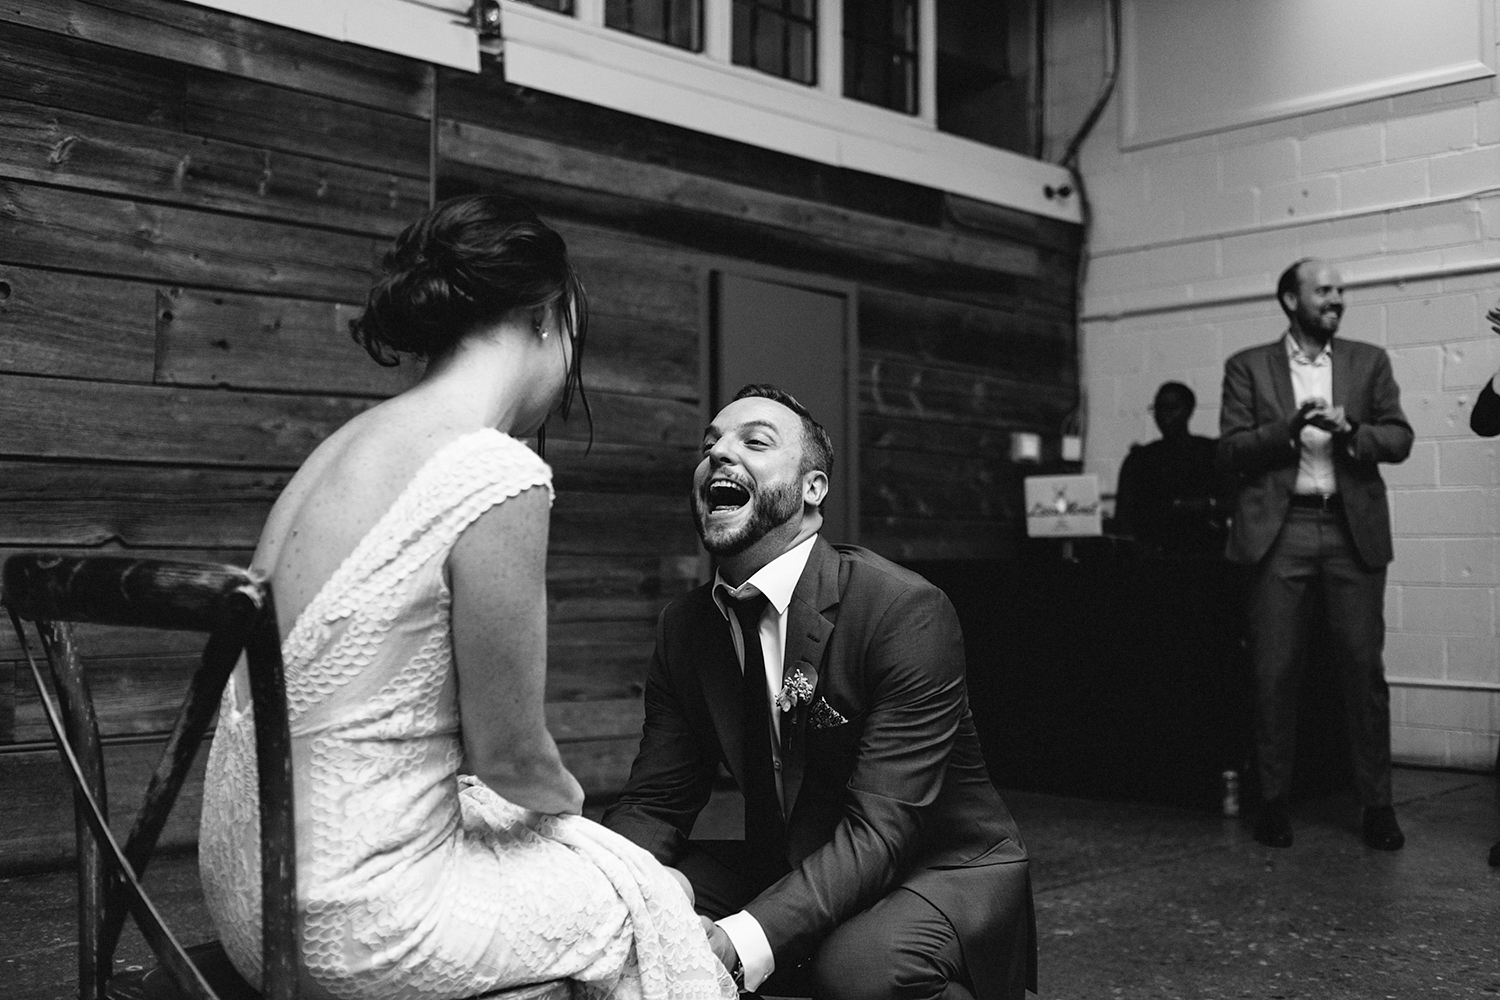 Best-Wedding-photographers-Toronto-NAtural-Candid-wedding-photography-Airship37-Reception-Venue-dance-party-guests-partying-garter-toss-hilarious-bw.jpg